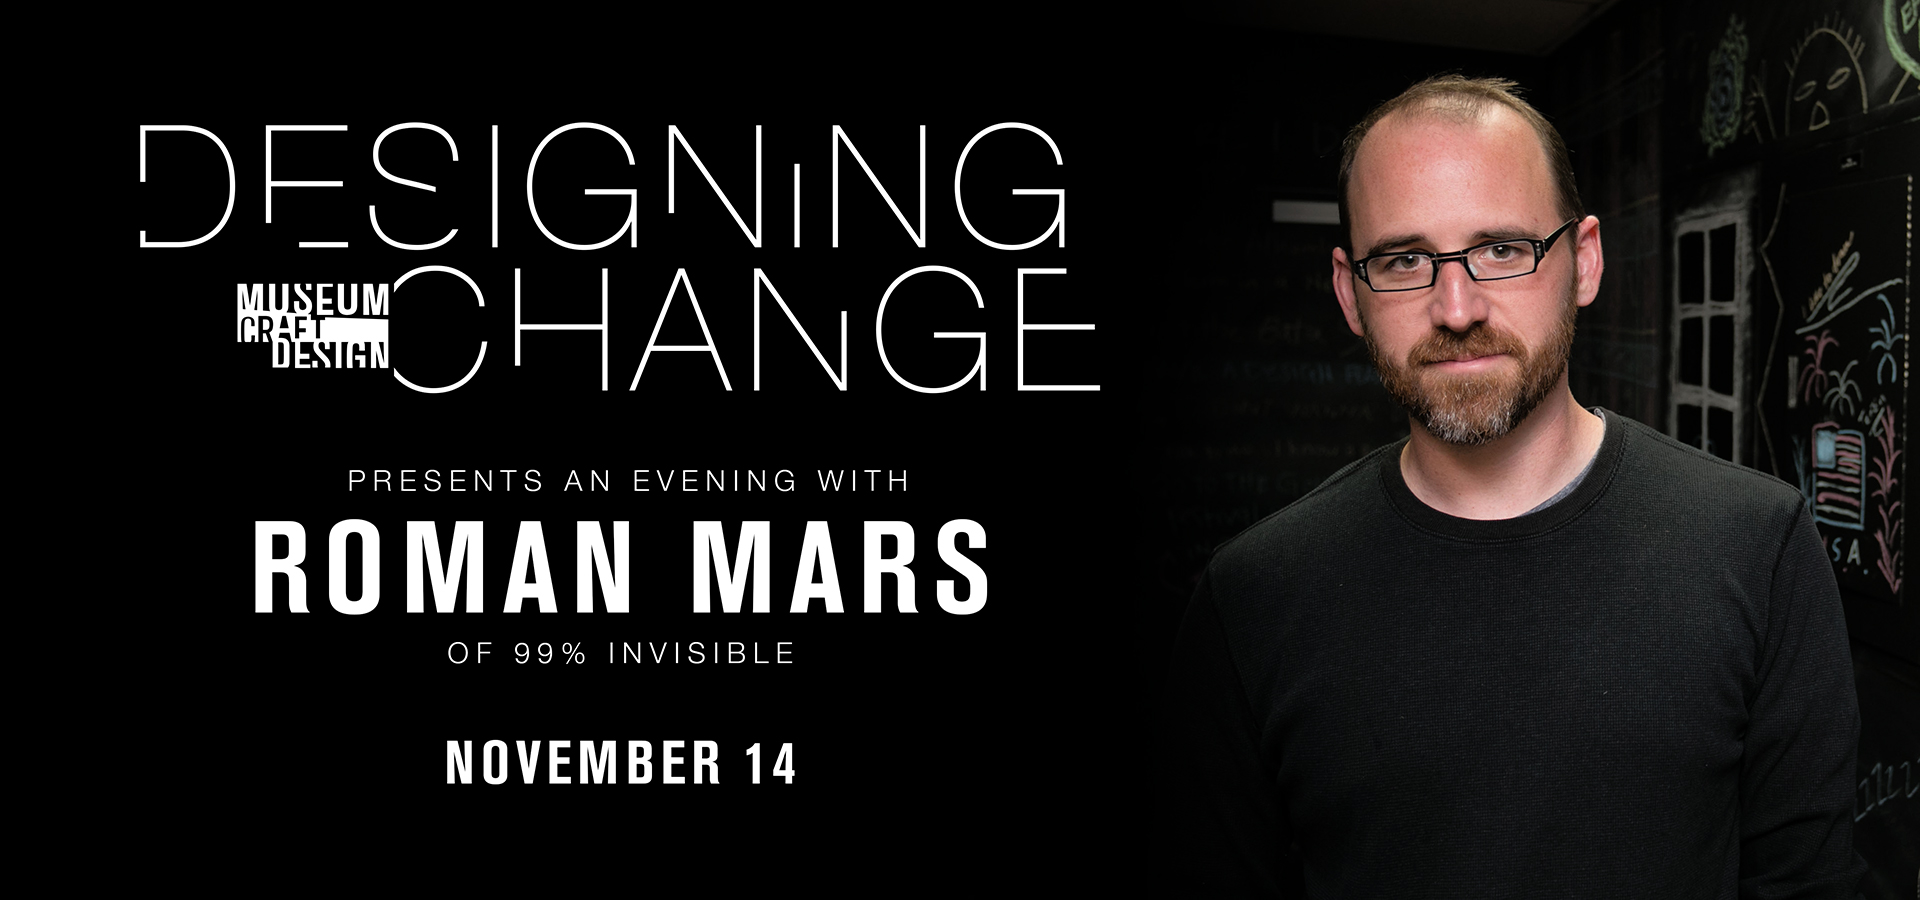 Designing Change graphic banner with head shot of Roman Mars for November 14, 2019 event